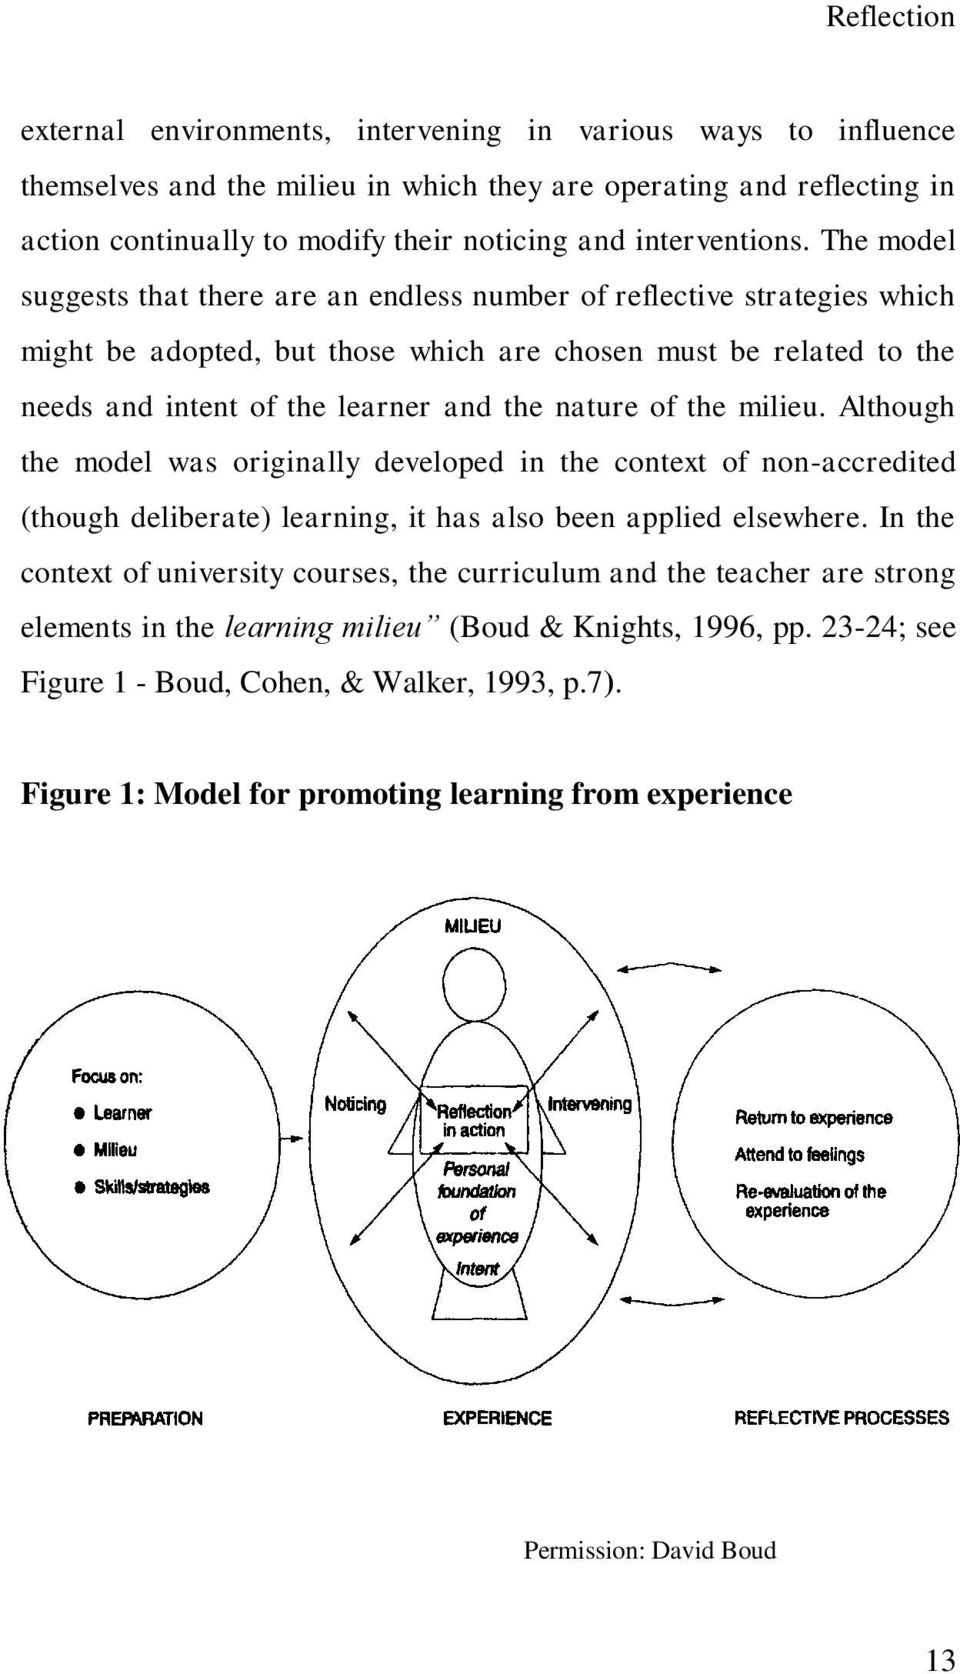 The model suggests that there are an endless number of reflective strategies which might be adopted, but those which are chosen must be related to the needs and intent of the learner and the nature